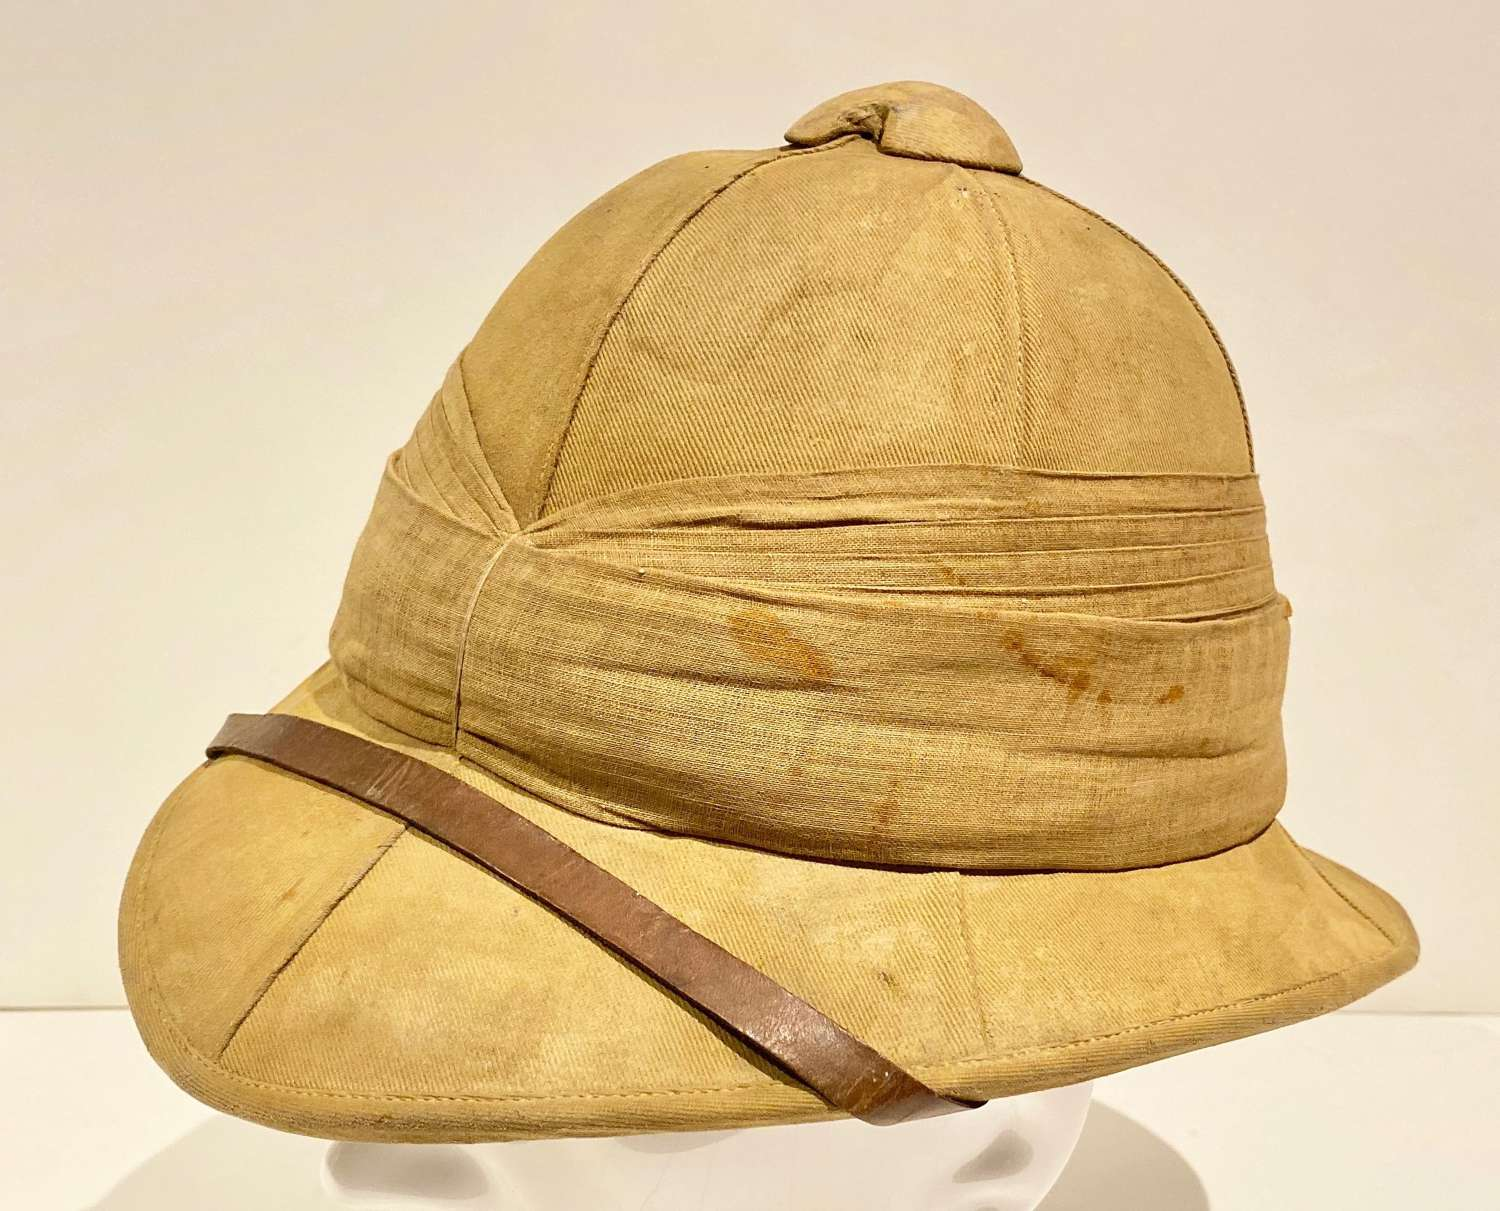 WW1 Period Other Rank's Wolseley Pattern Foreign Service Helmet.